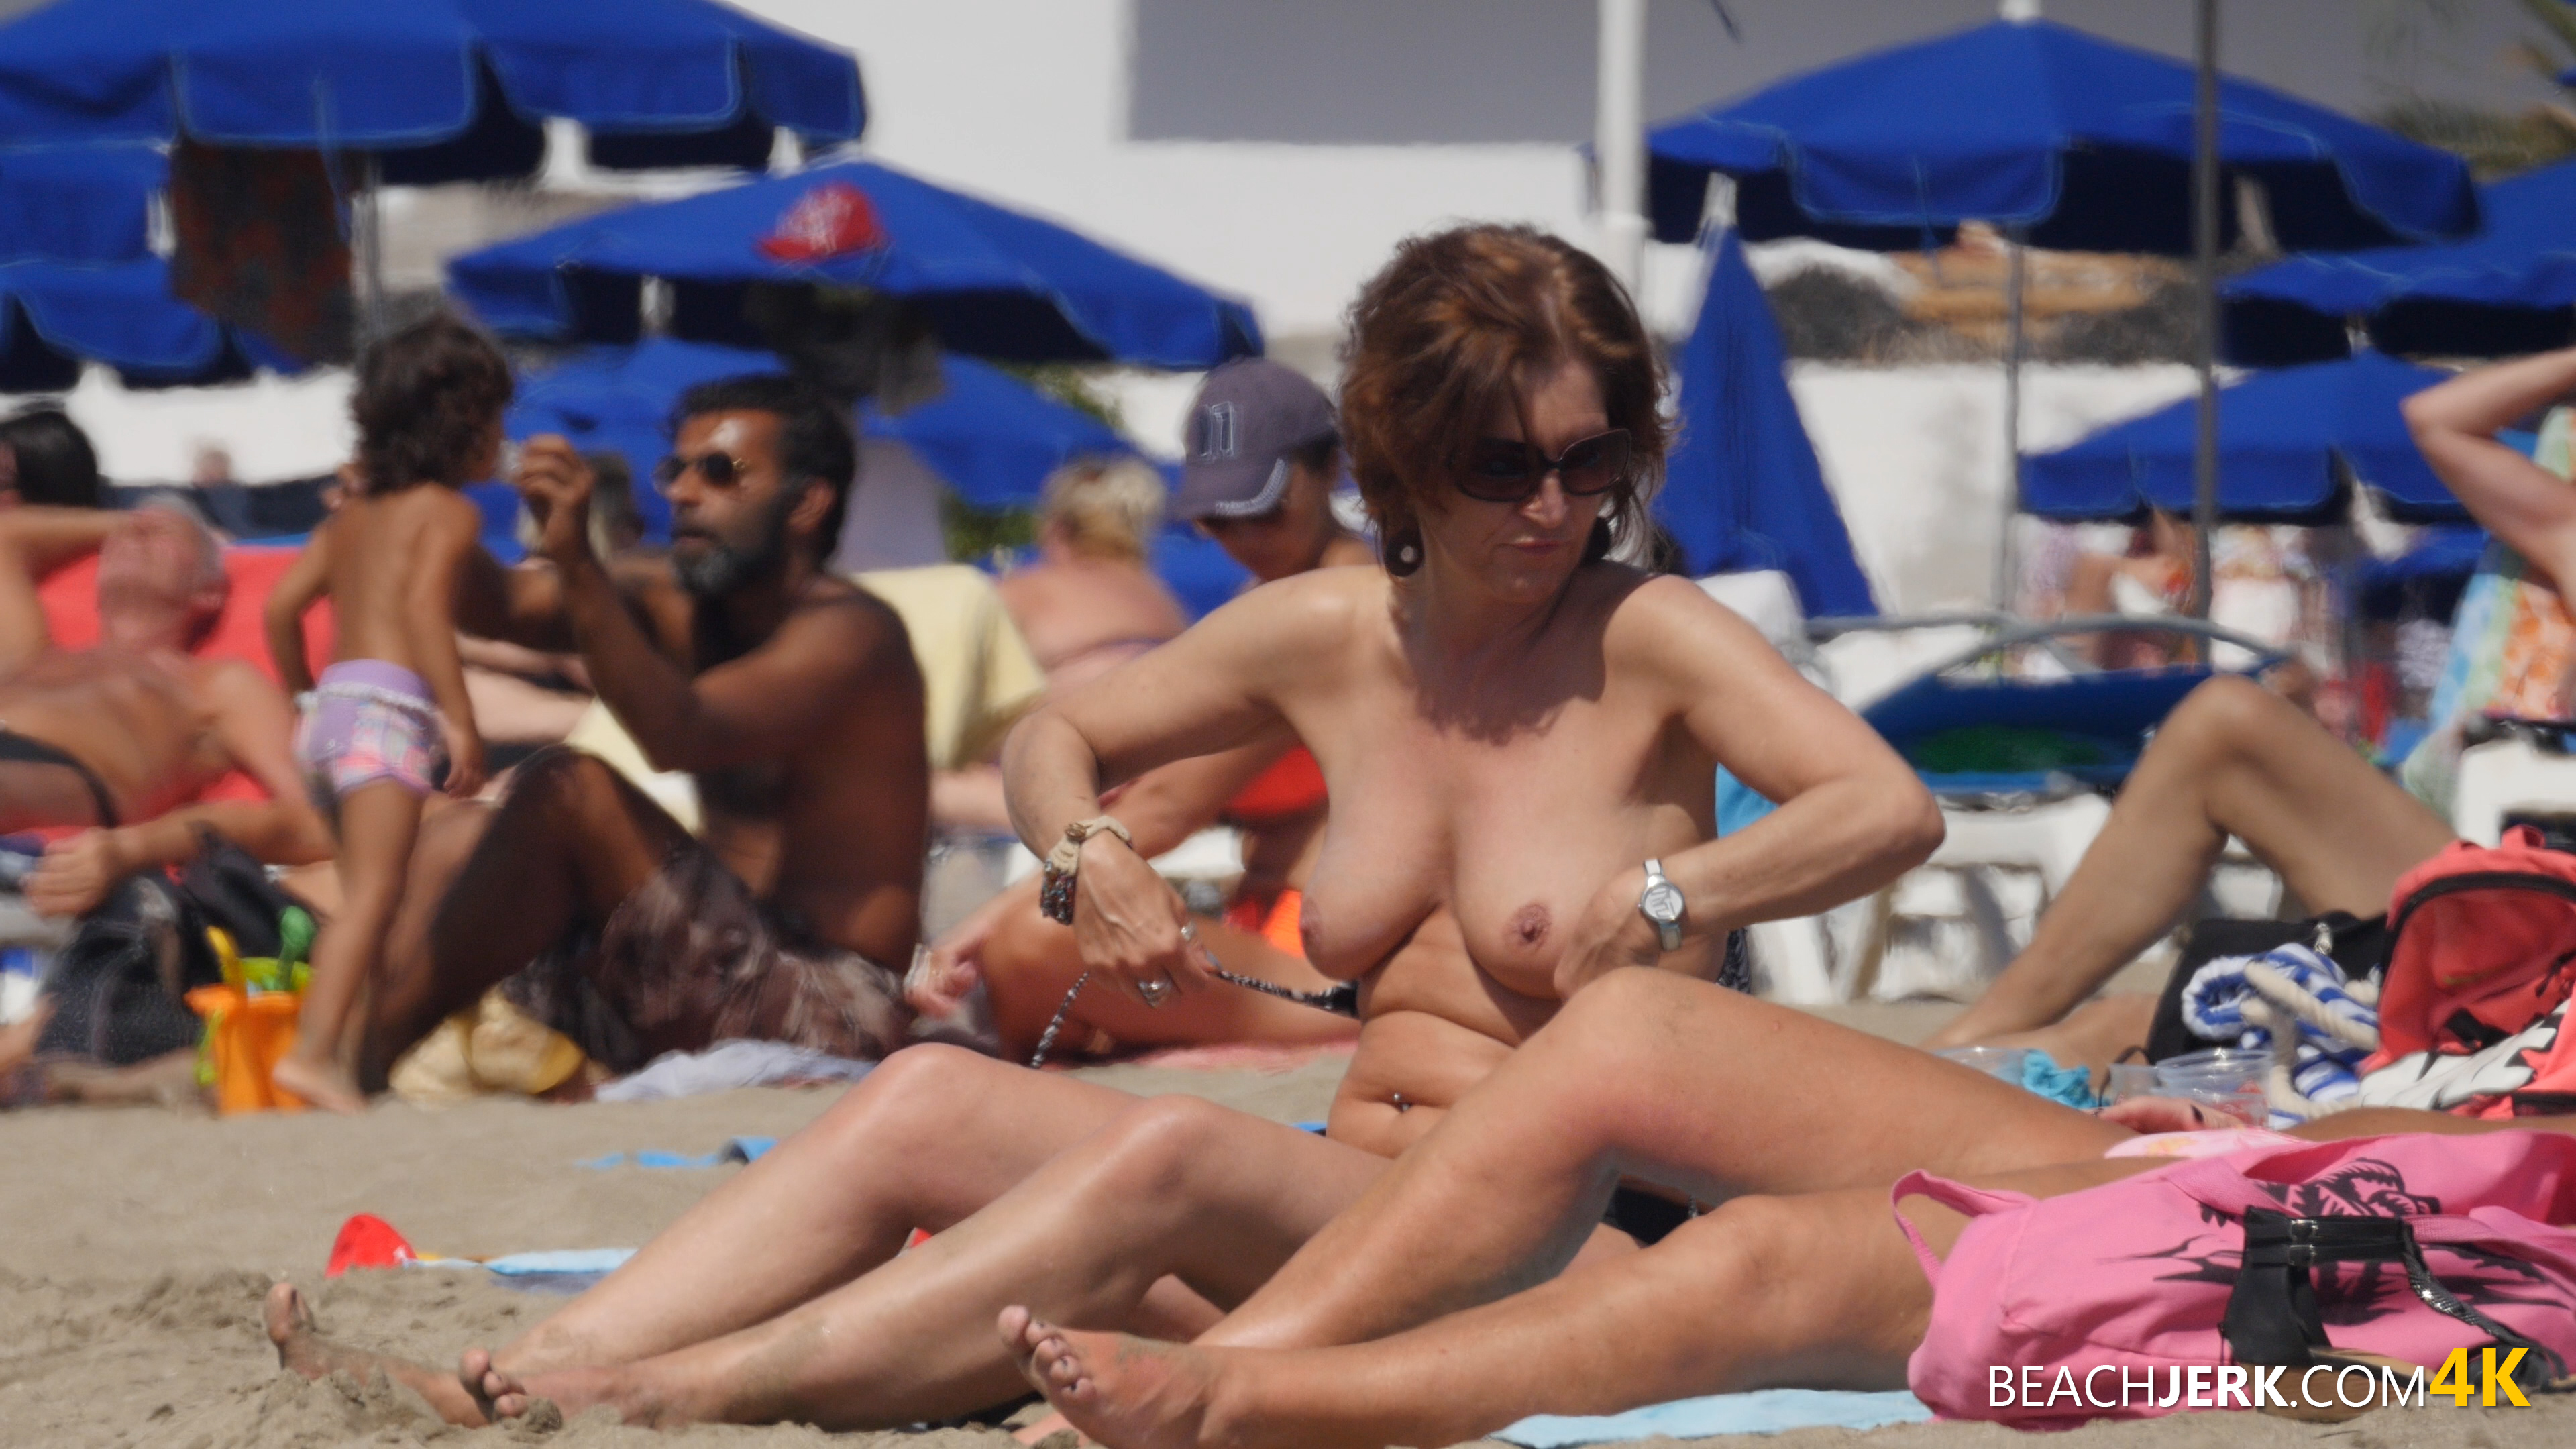 Topless beach videos #10